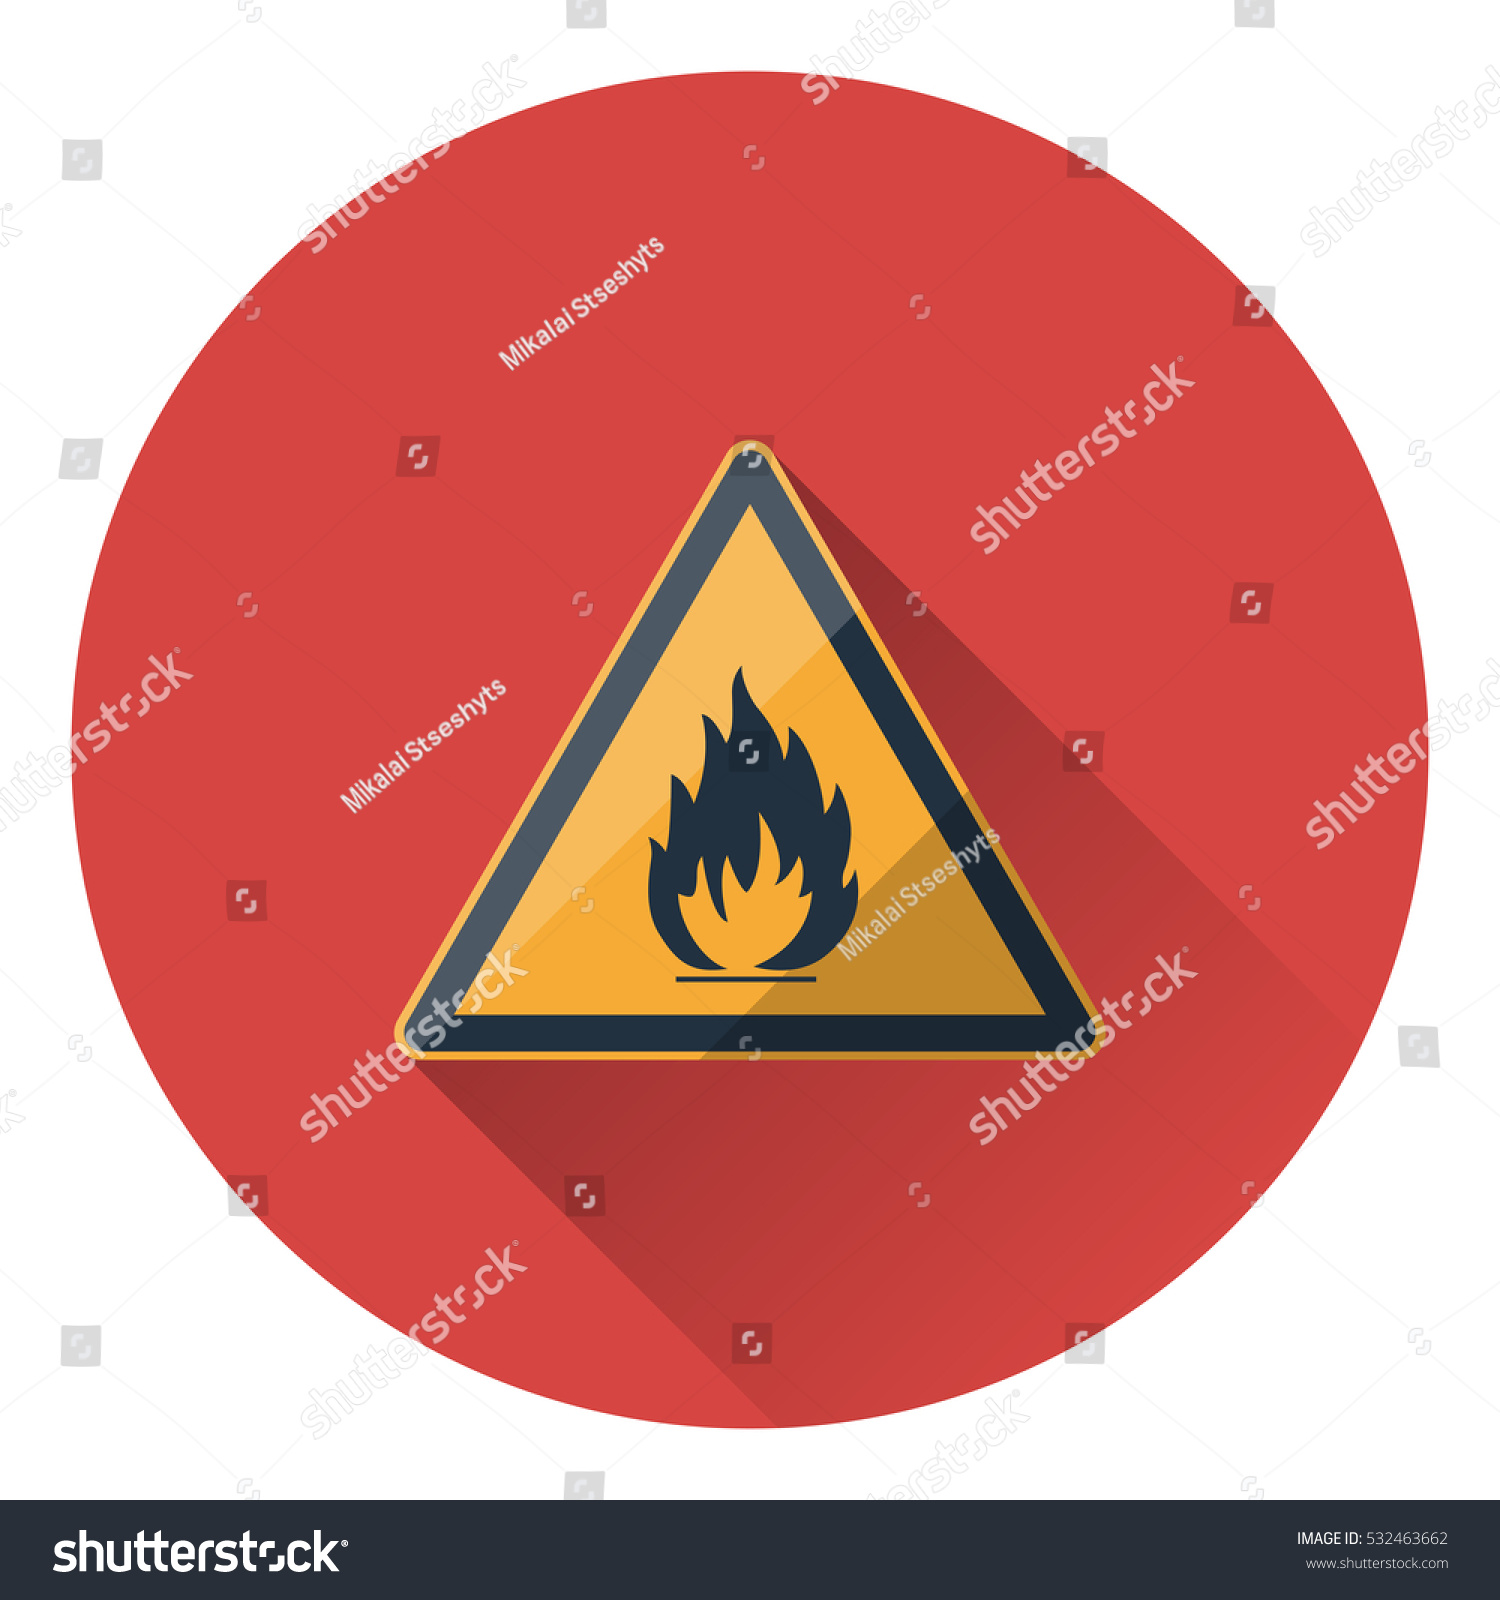 Fire warning sign yellow triangle flammable stock vector 532463662 fire warning sign in yellow triangle flammable icon flat style with long shadow buycottarizona